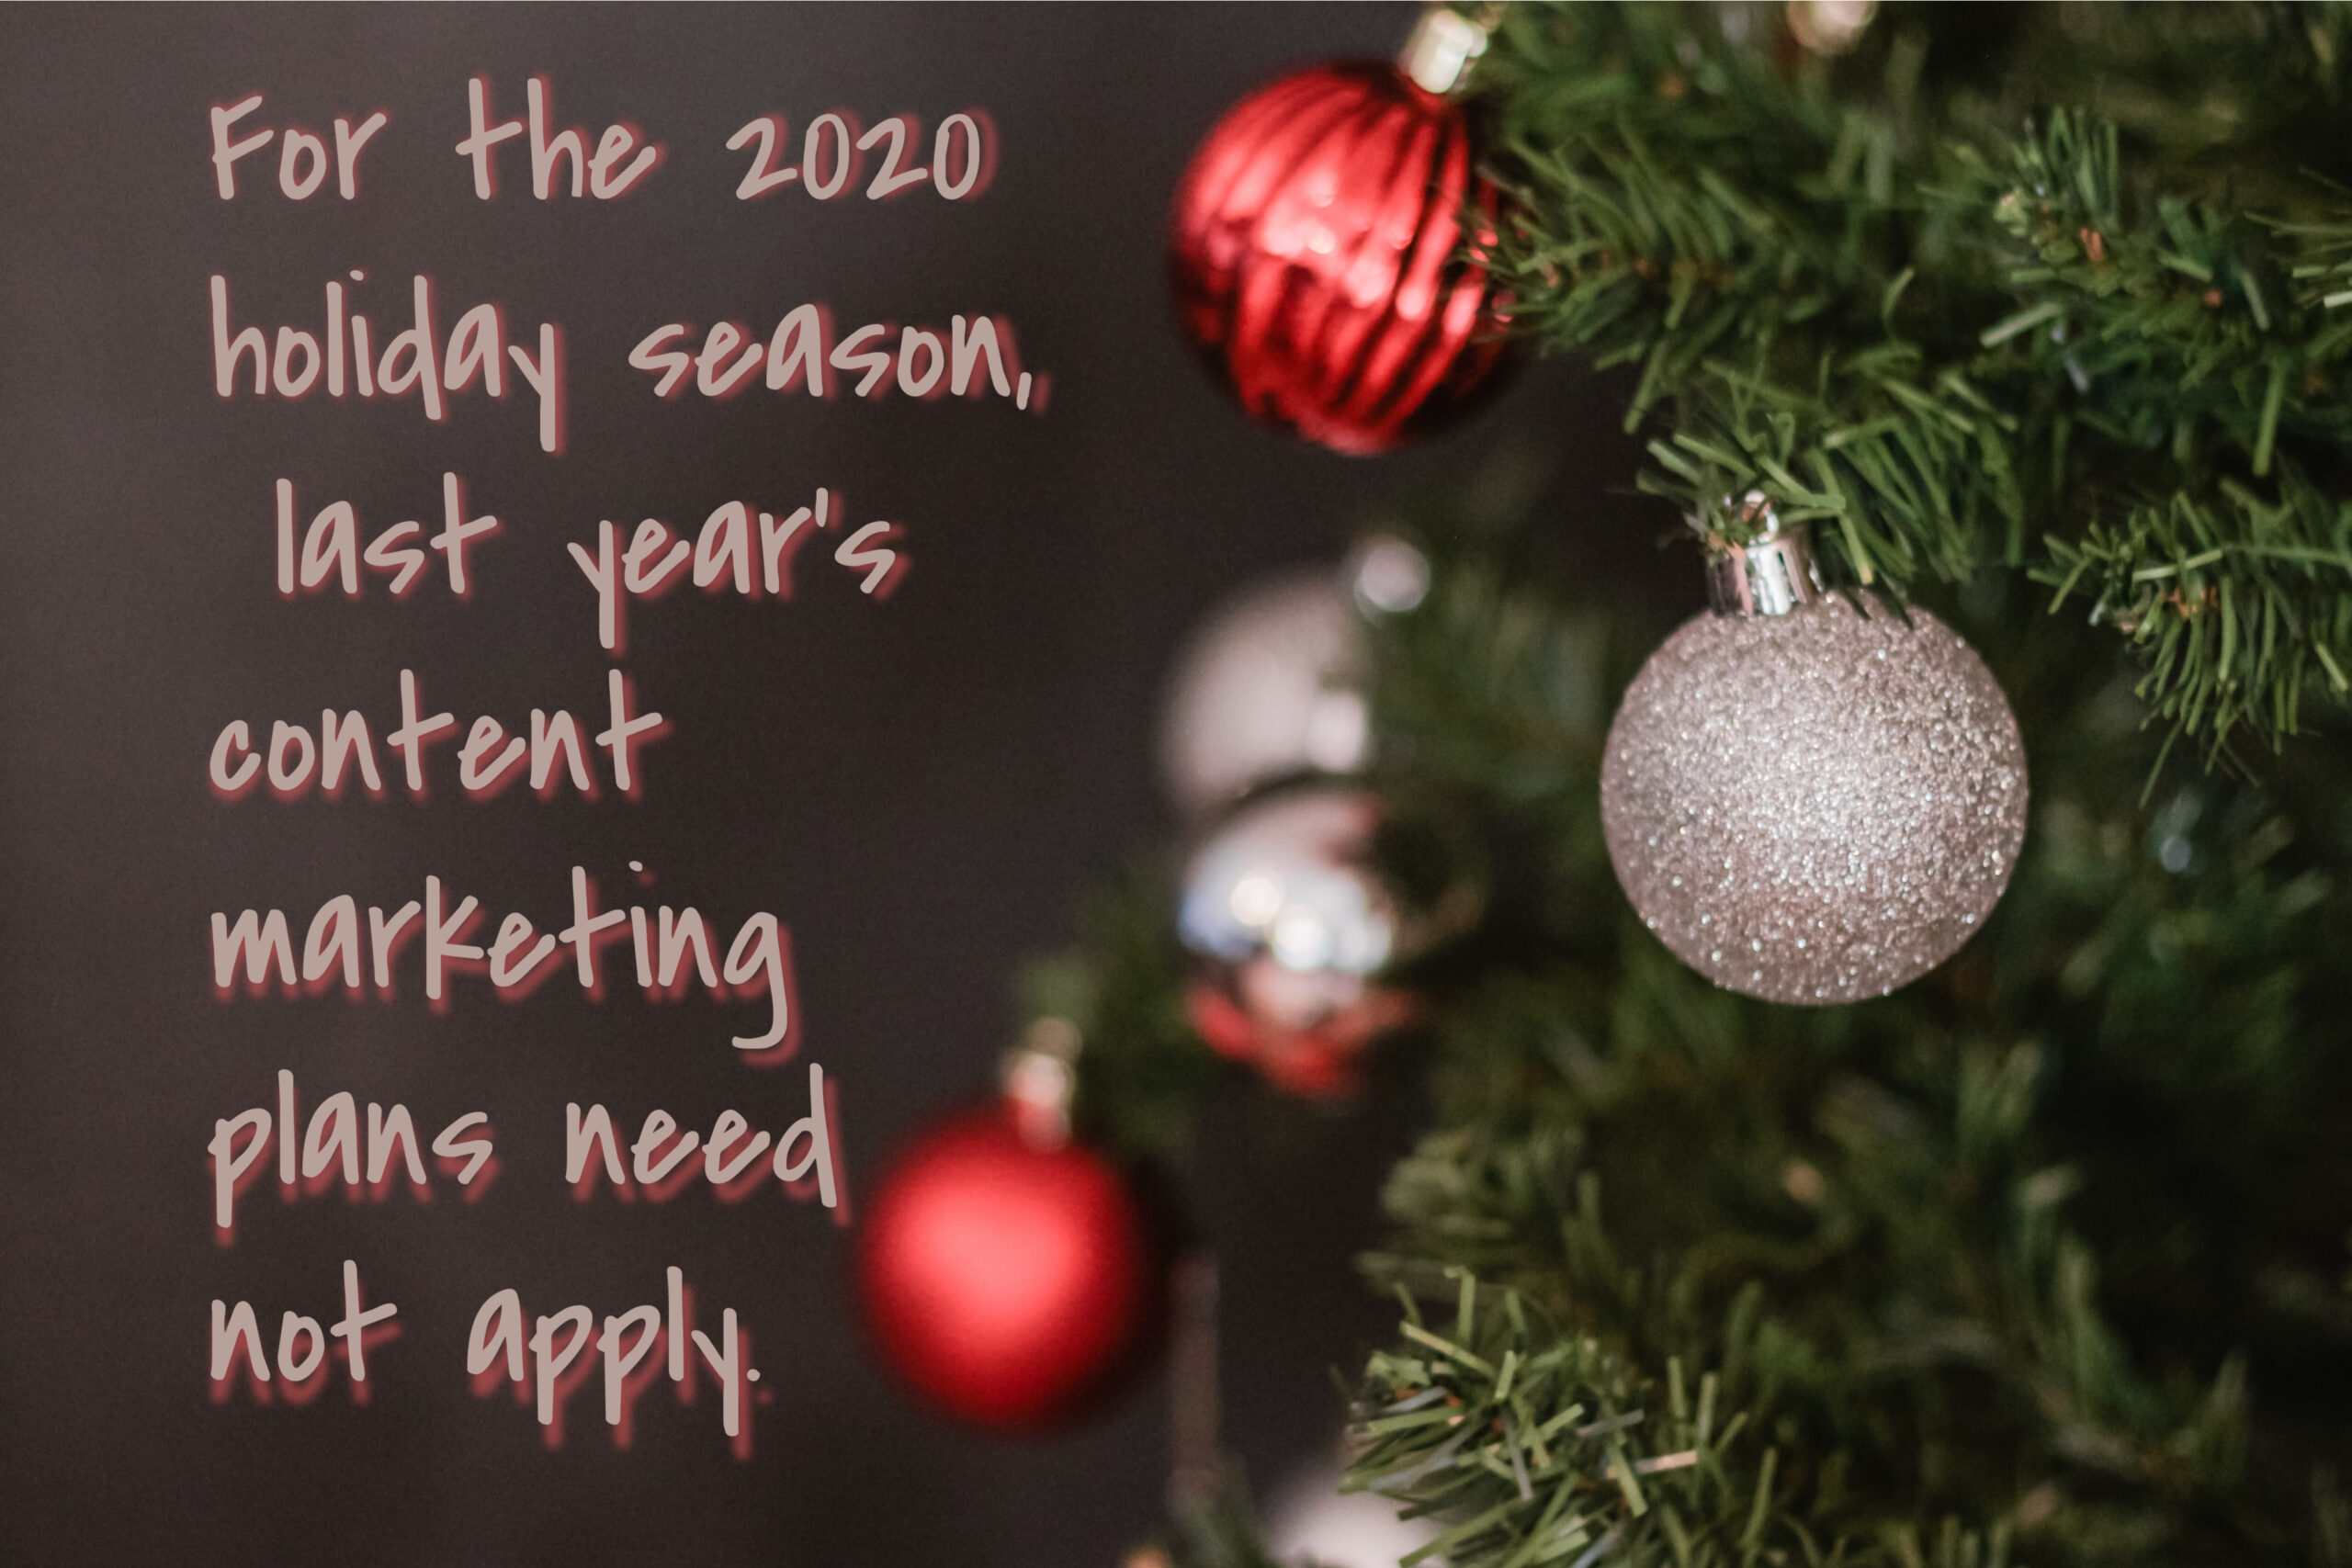 Content marketing for the 2020 holiday season